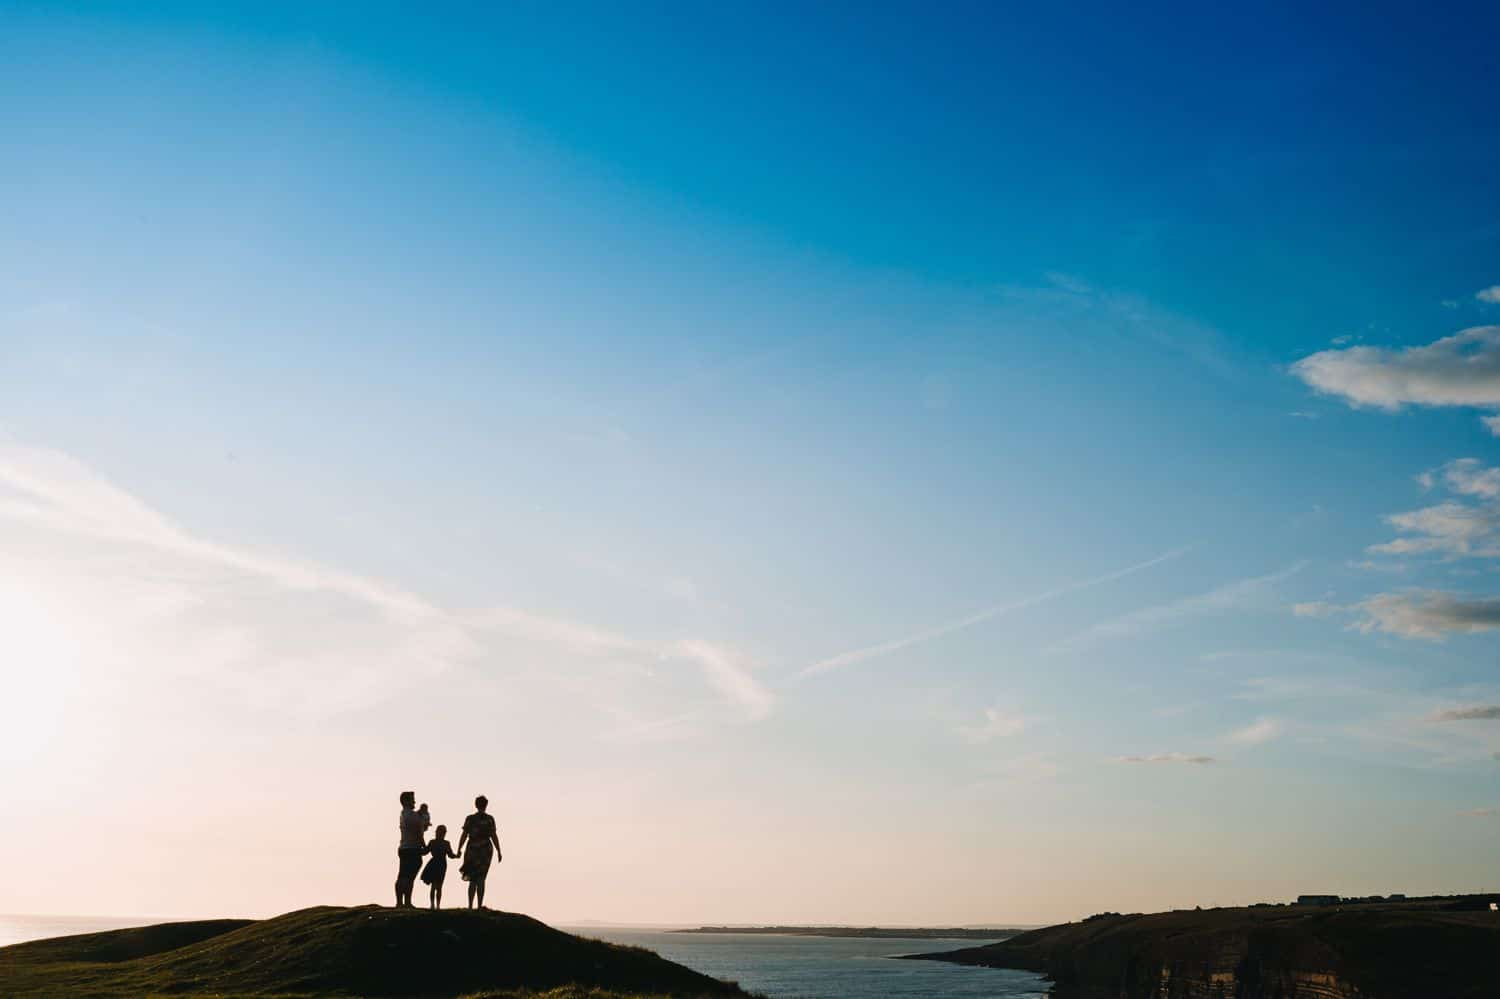 Silhouette of a family standing on a hill overlooking the ocean.